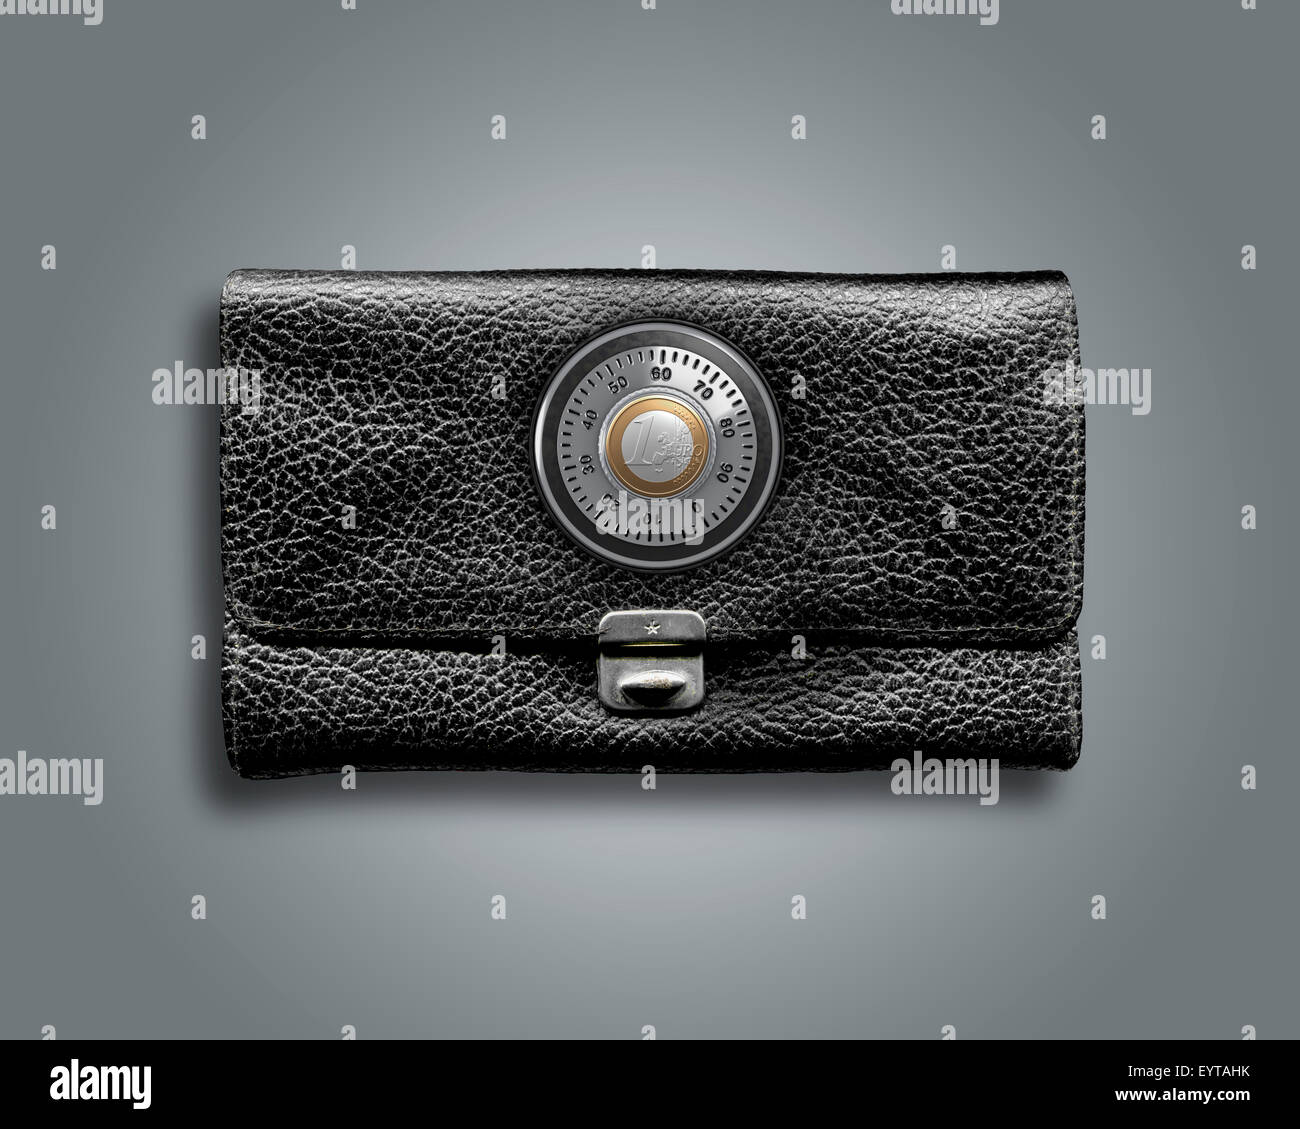 3d, CGI, [M], symbol, purse, protection, combination lock, money, finances, - Stock Image